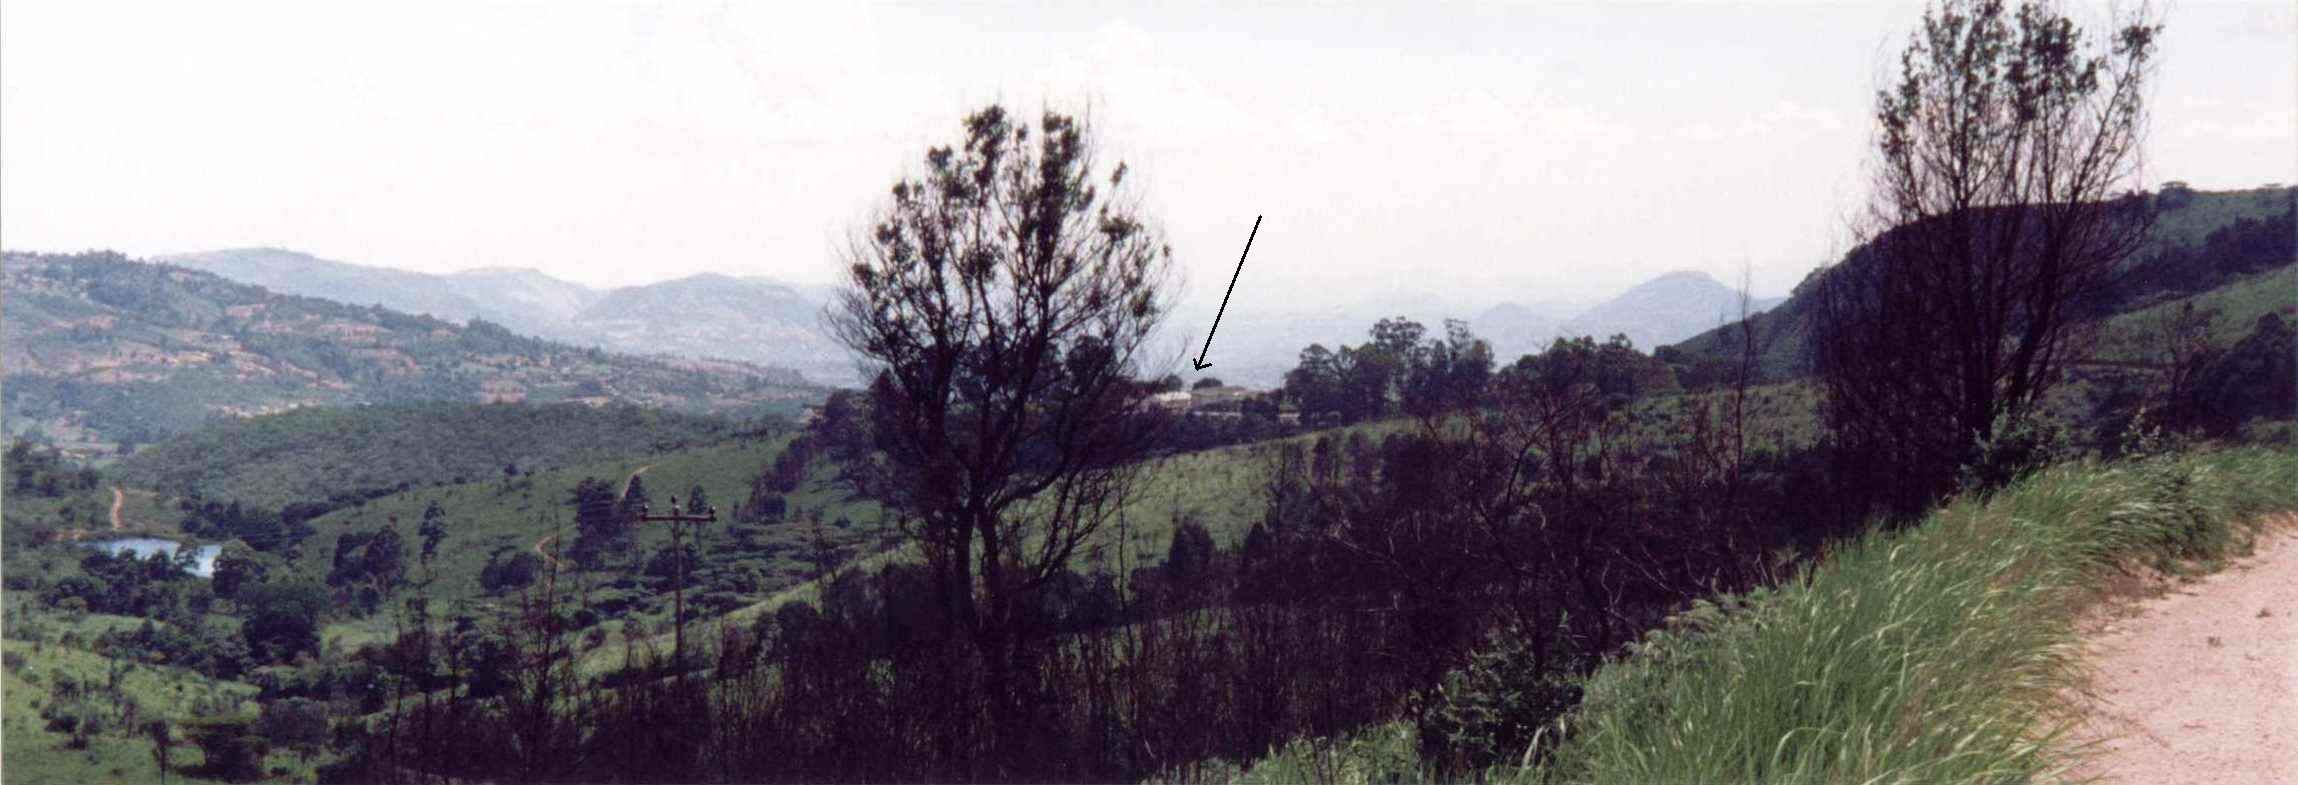 Eagle school, Umtali, from the drive